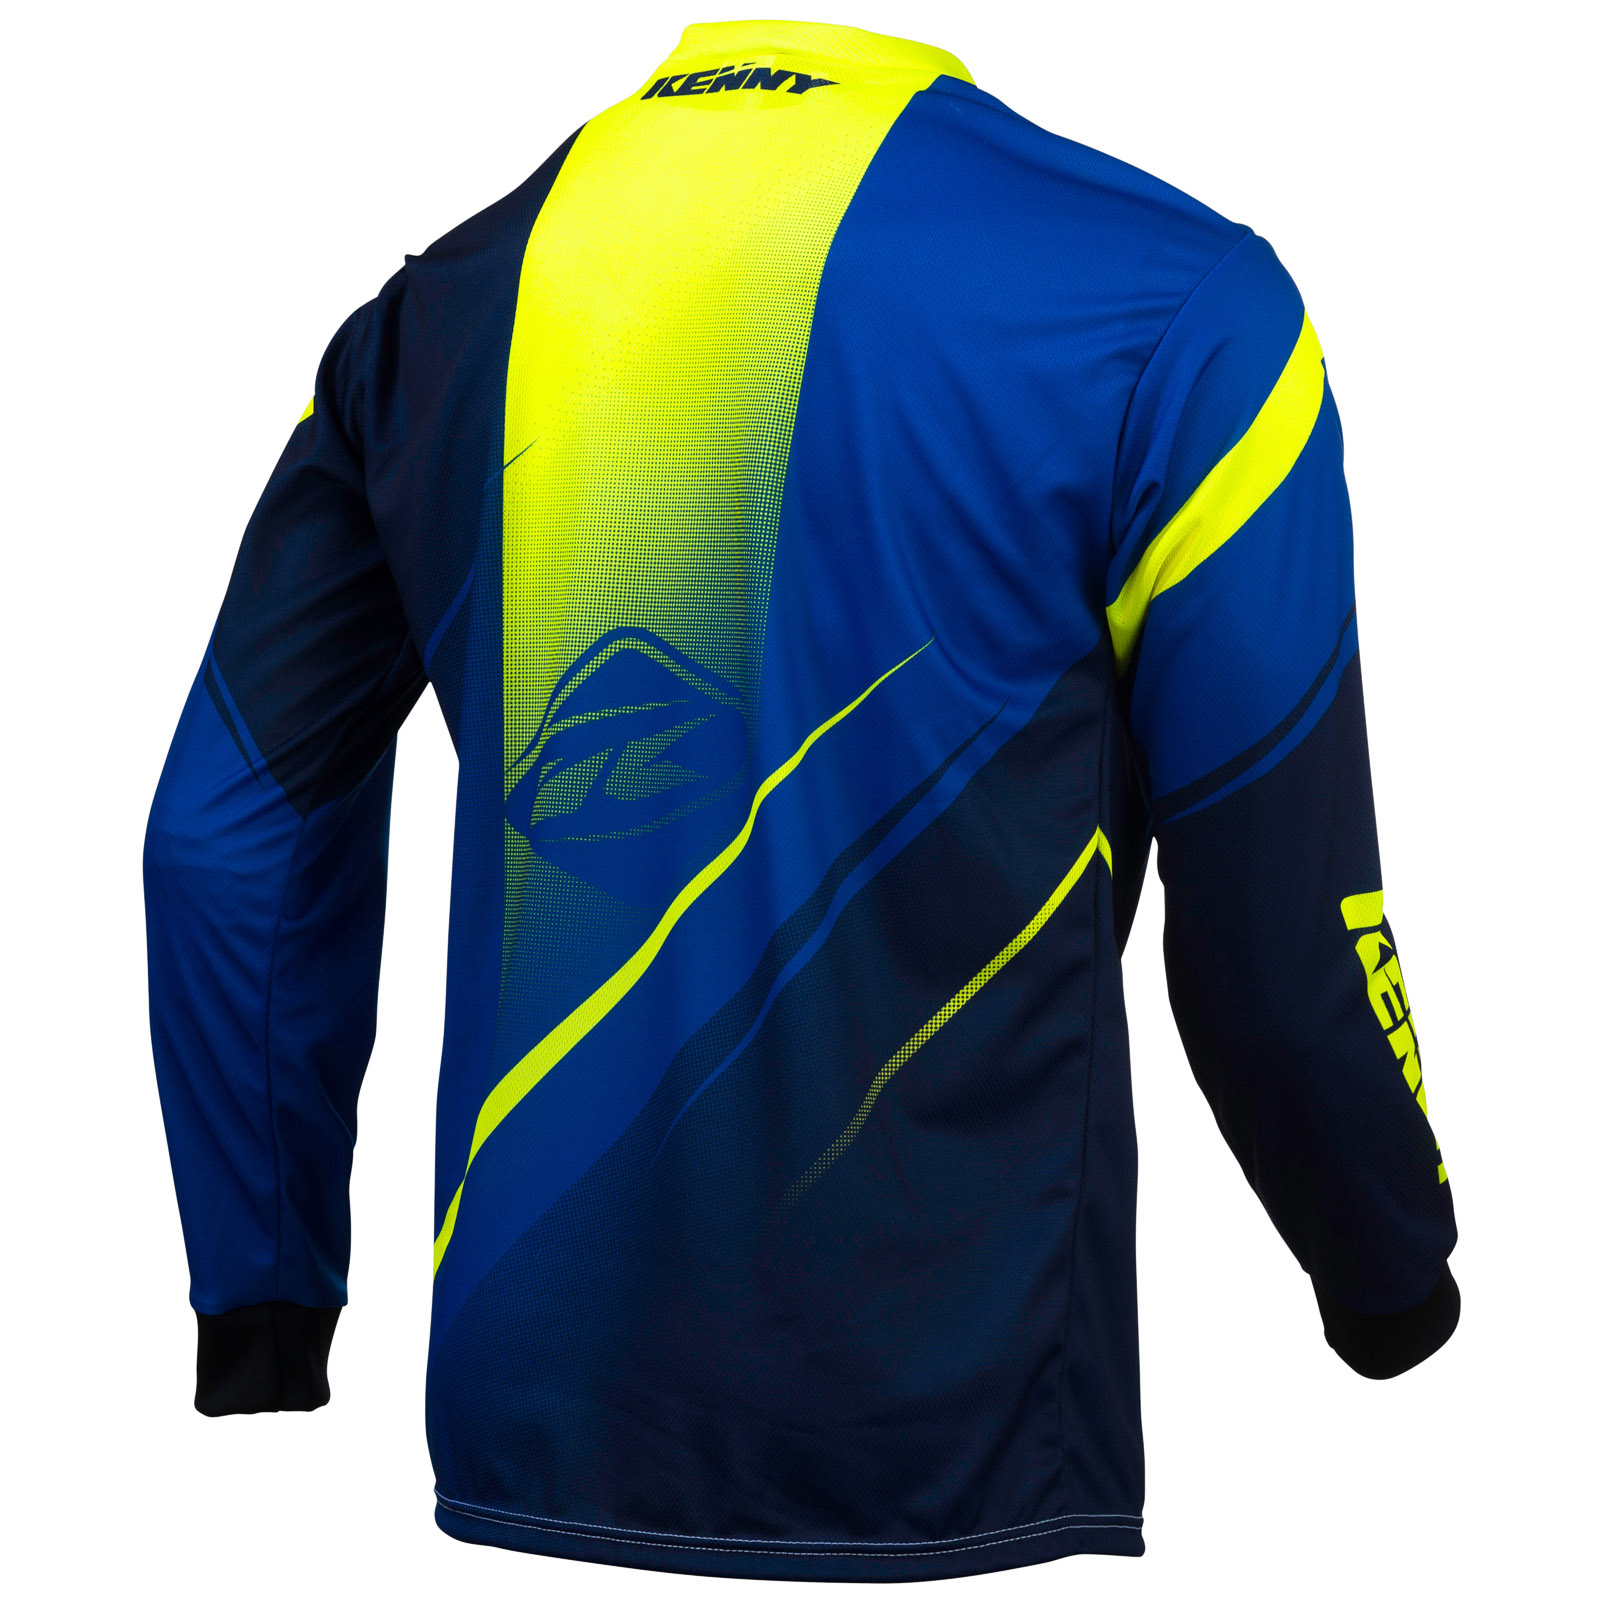 maillot kenny track manches longues bleujaune fluo 2016 probikeshop - Chambre Jaune Fluo